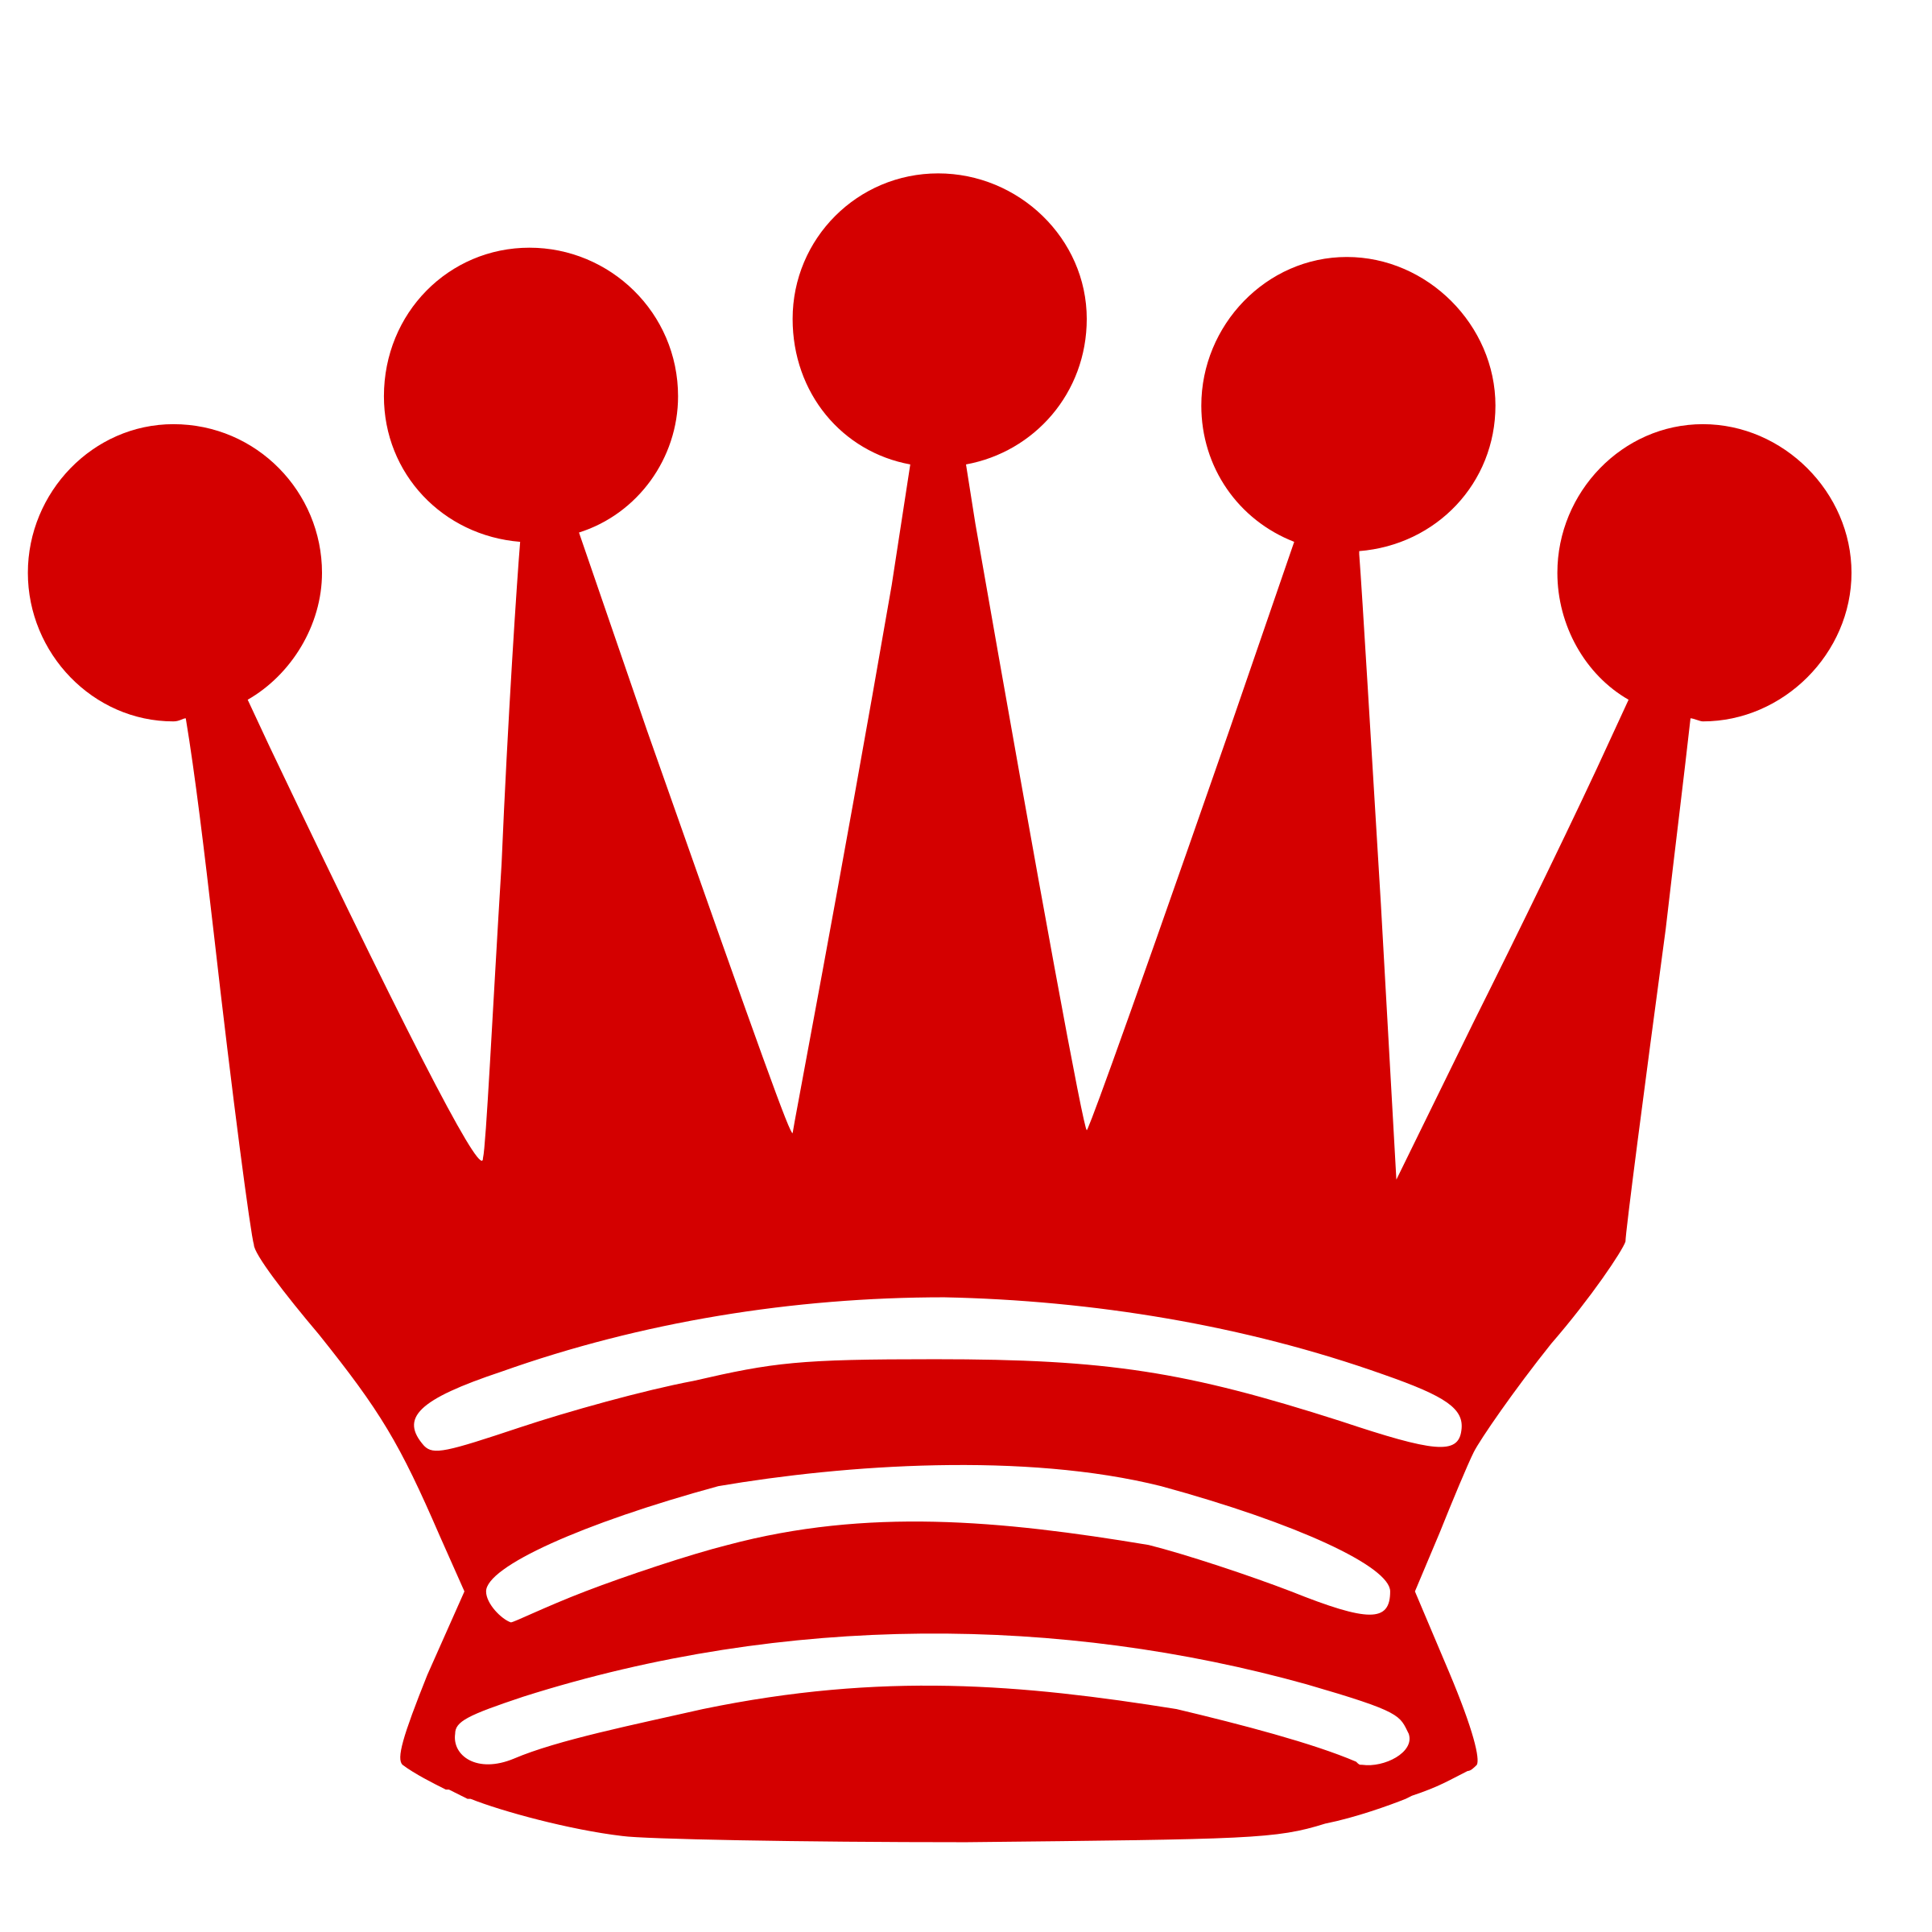 Victoria silhouette at getdrawings. Queen clipart red queen